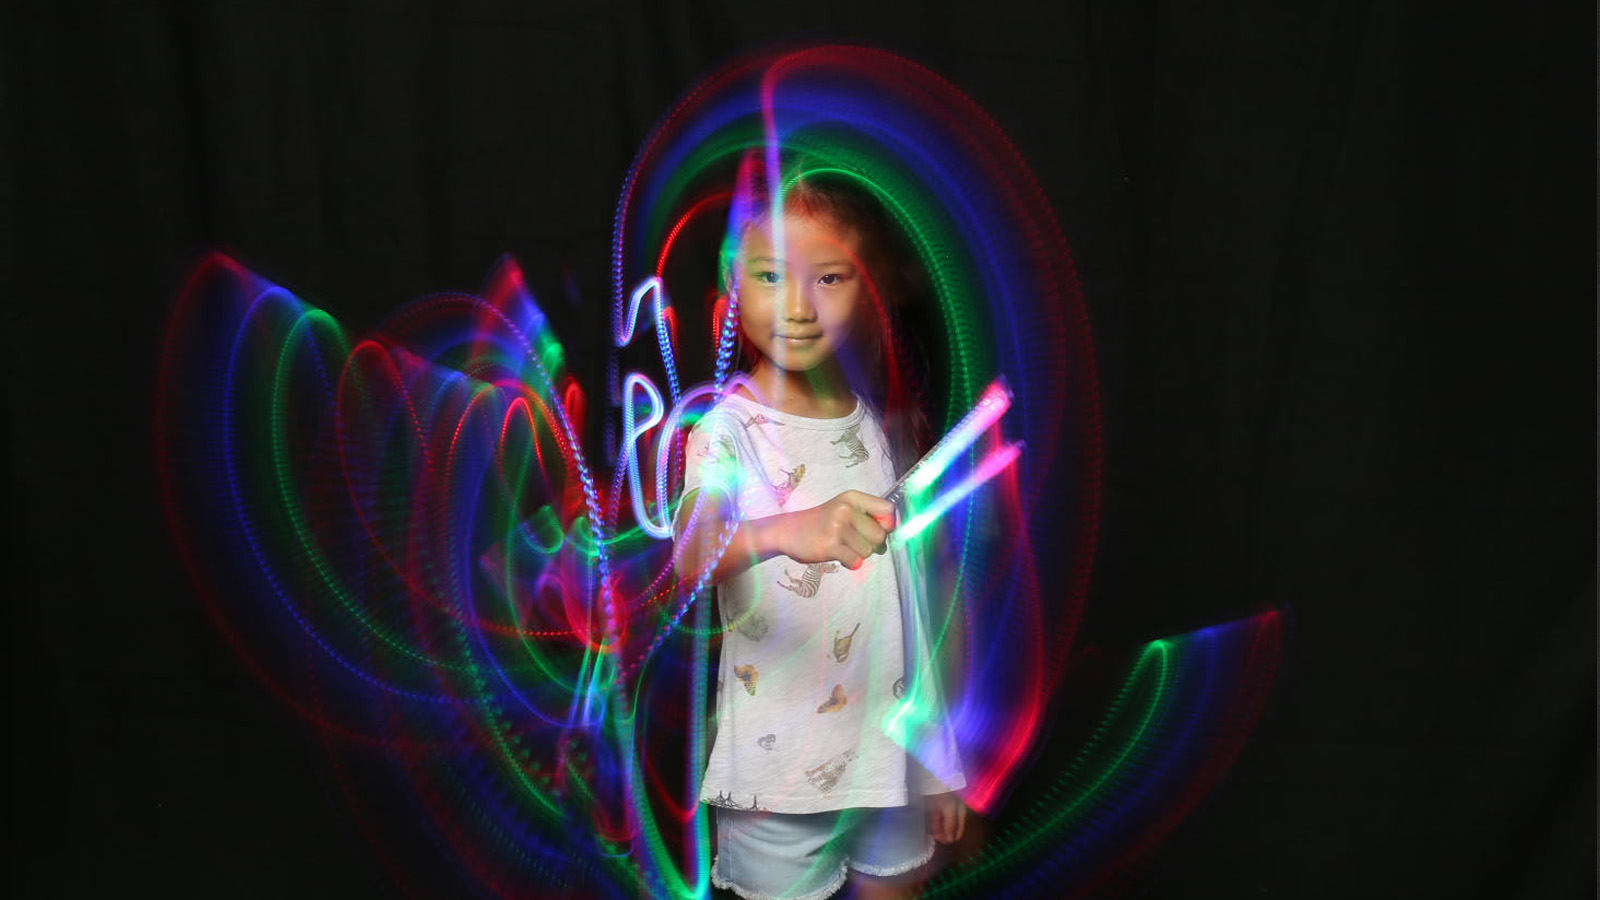 Light Painting with Photo Booth